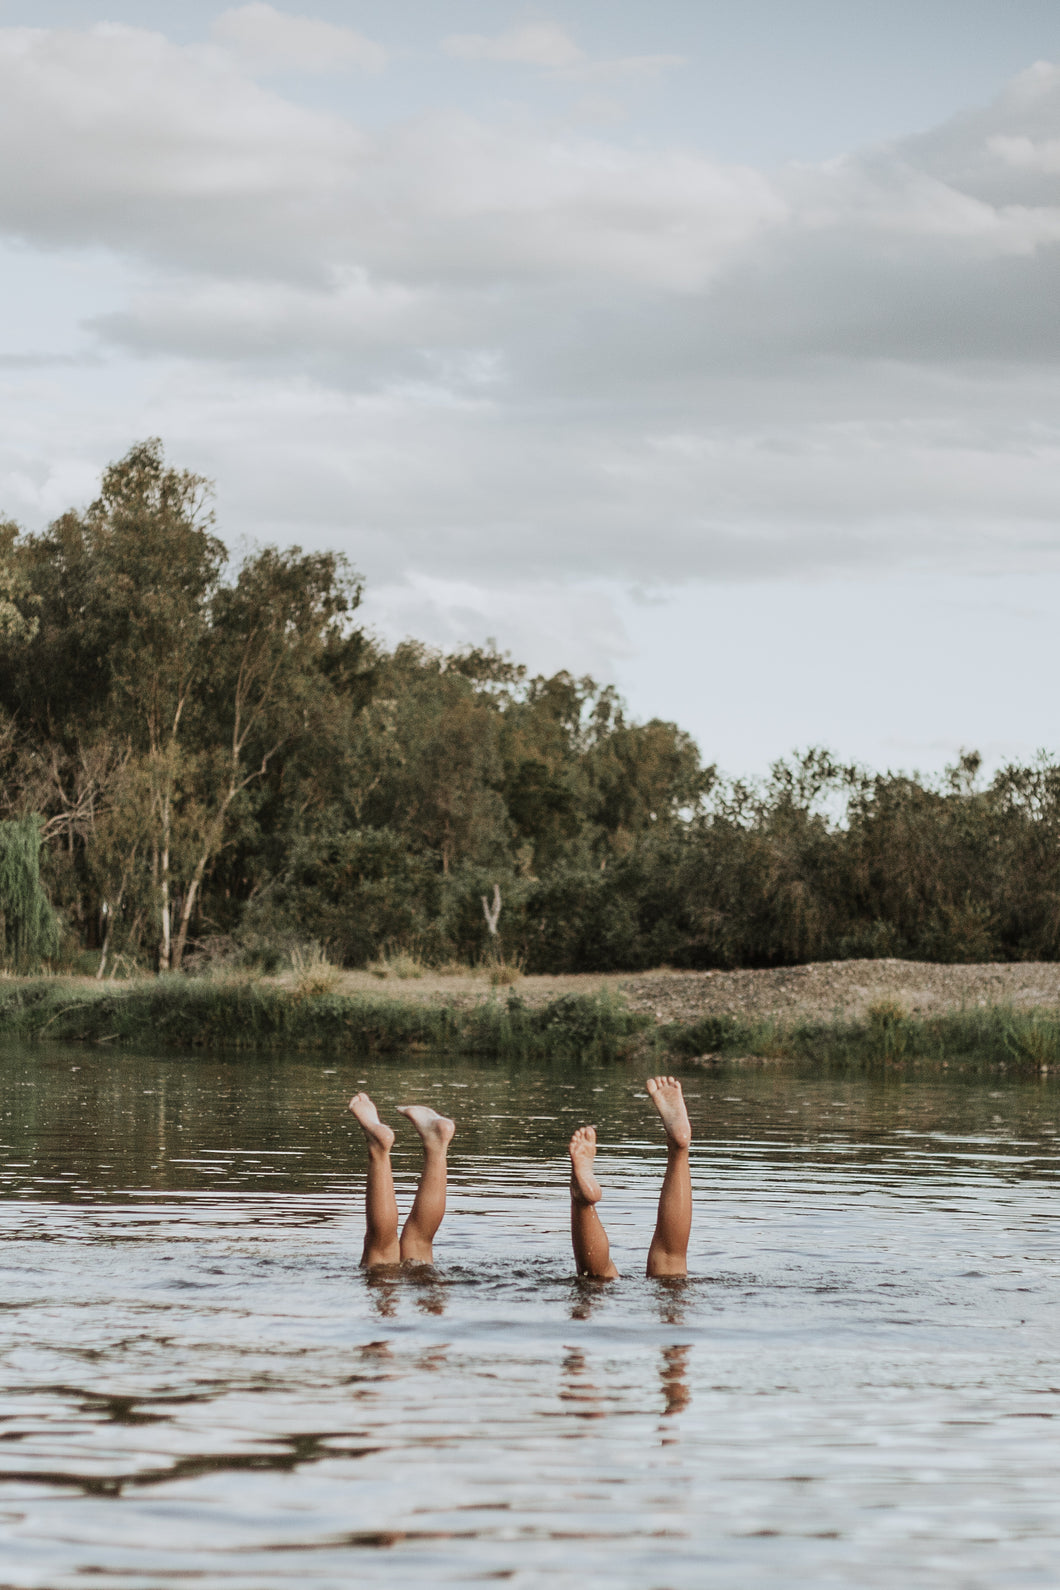 Photographic Art Print: 'Handstand Competition'